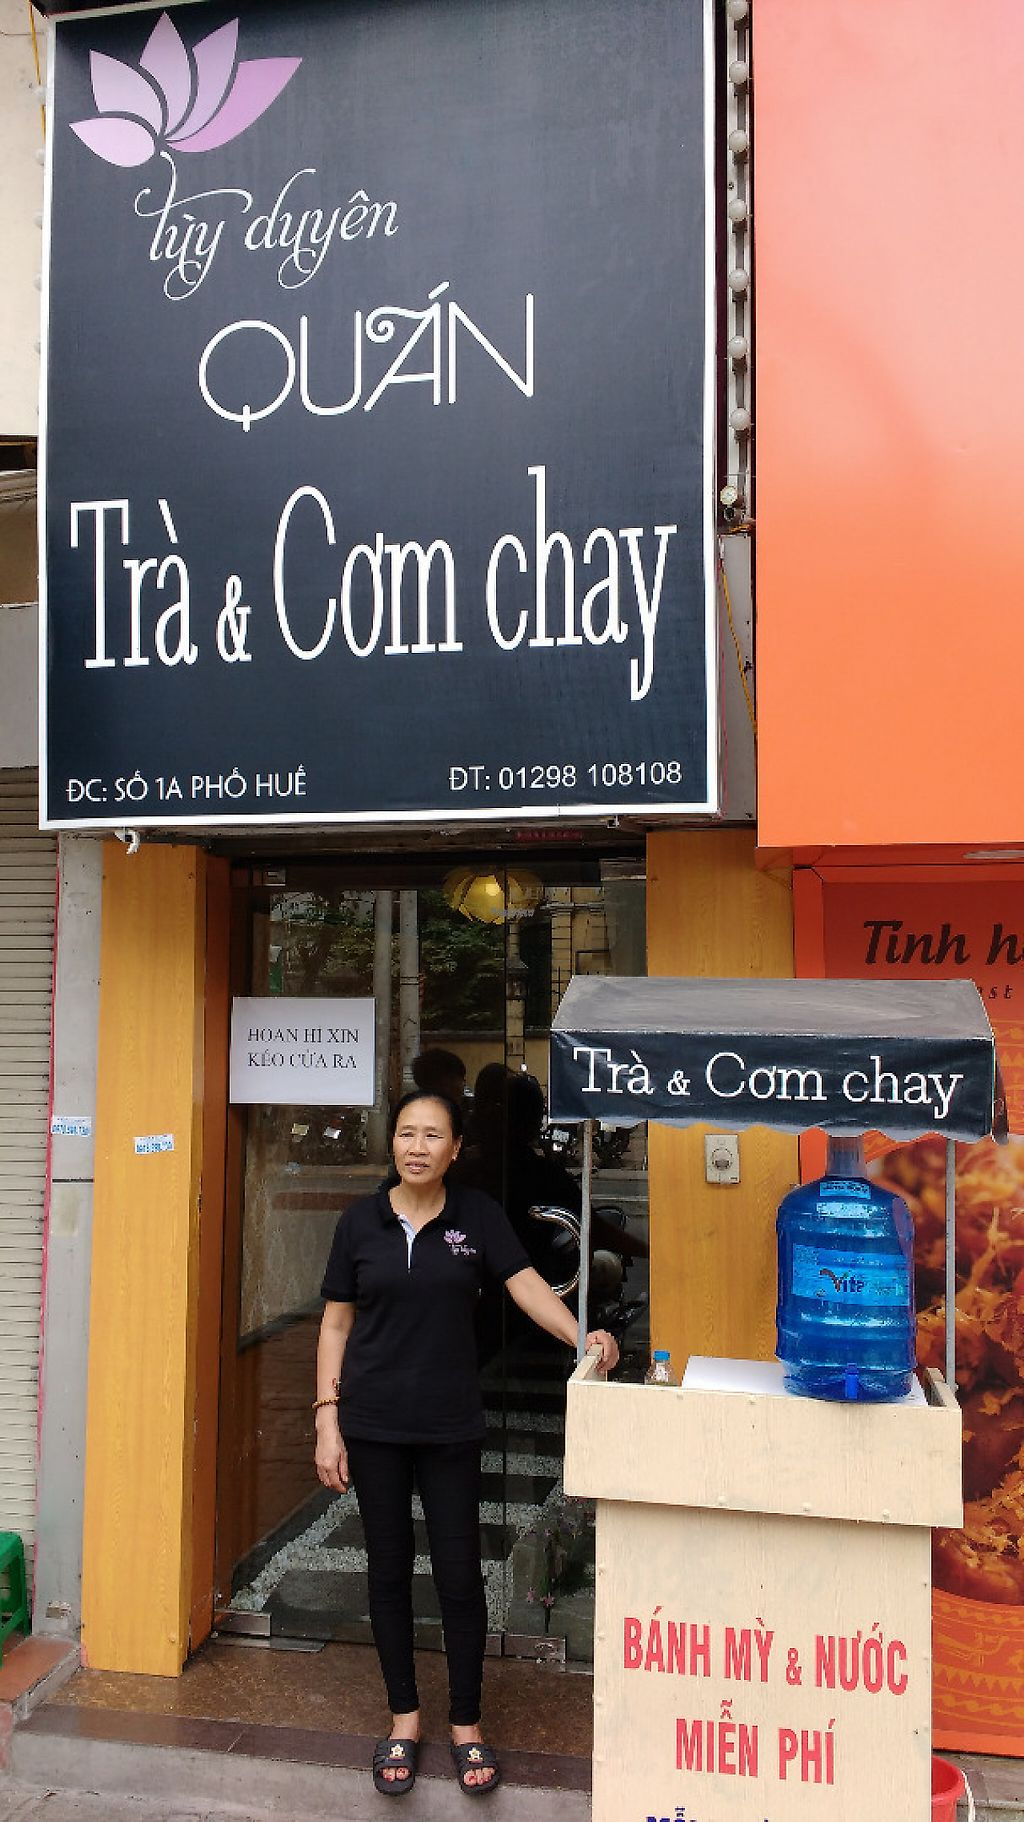 """Photo of Tuy Duyen Quan  by <a href=""""/members/profile/Laura1l"""">Laura1l</a> <br/>In front of the restaurant they have free bread and water for people in need <br/> February 22, 2017  - <a href='/contact/abuse/image/87459/229055'>Report</a>"""